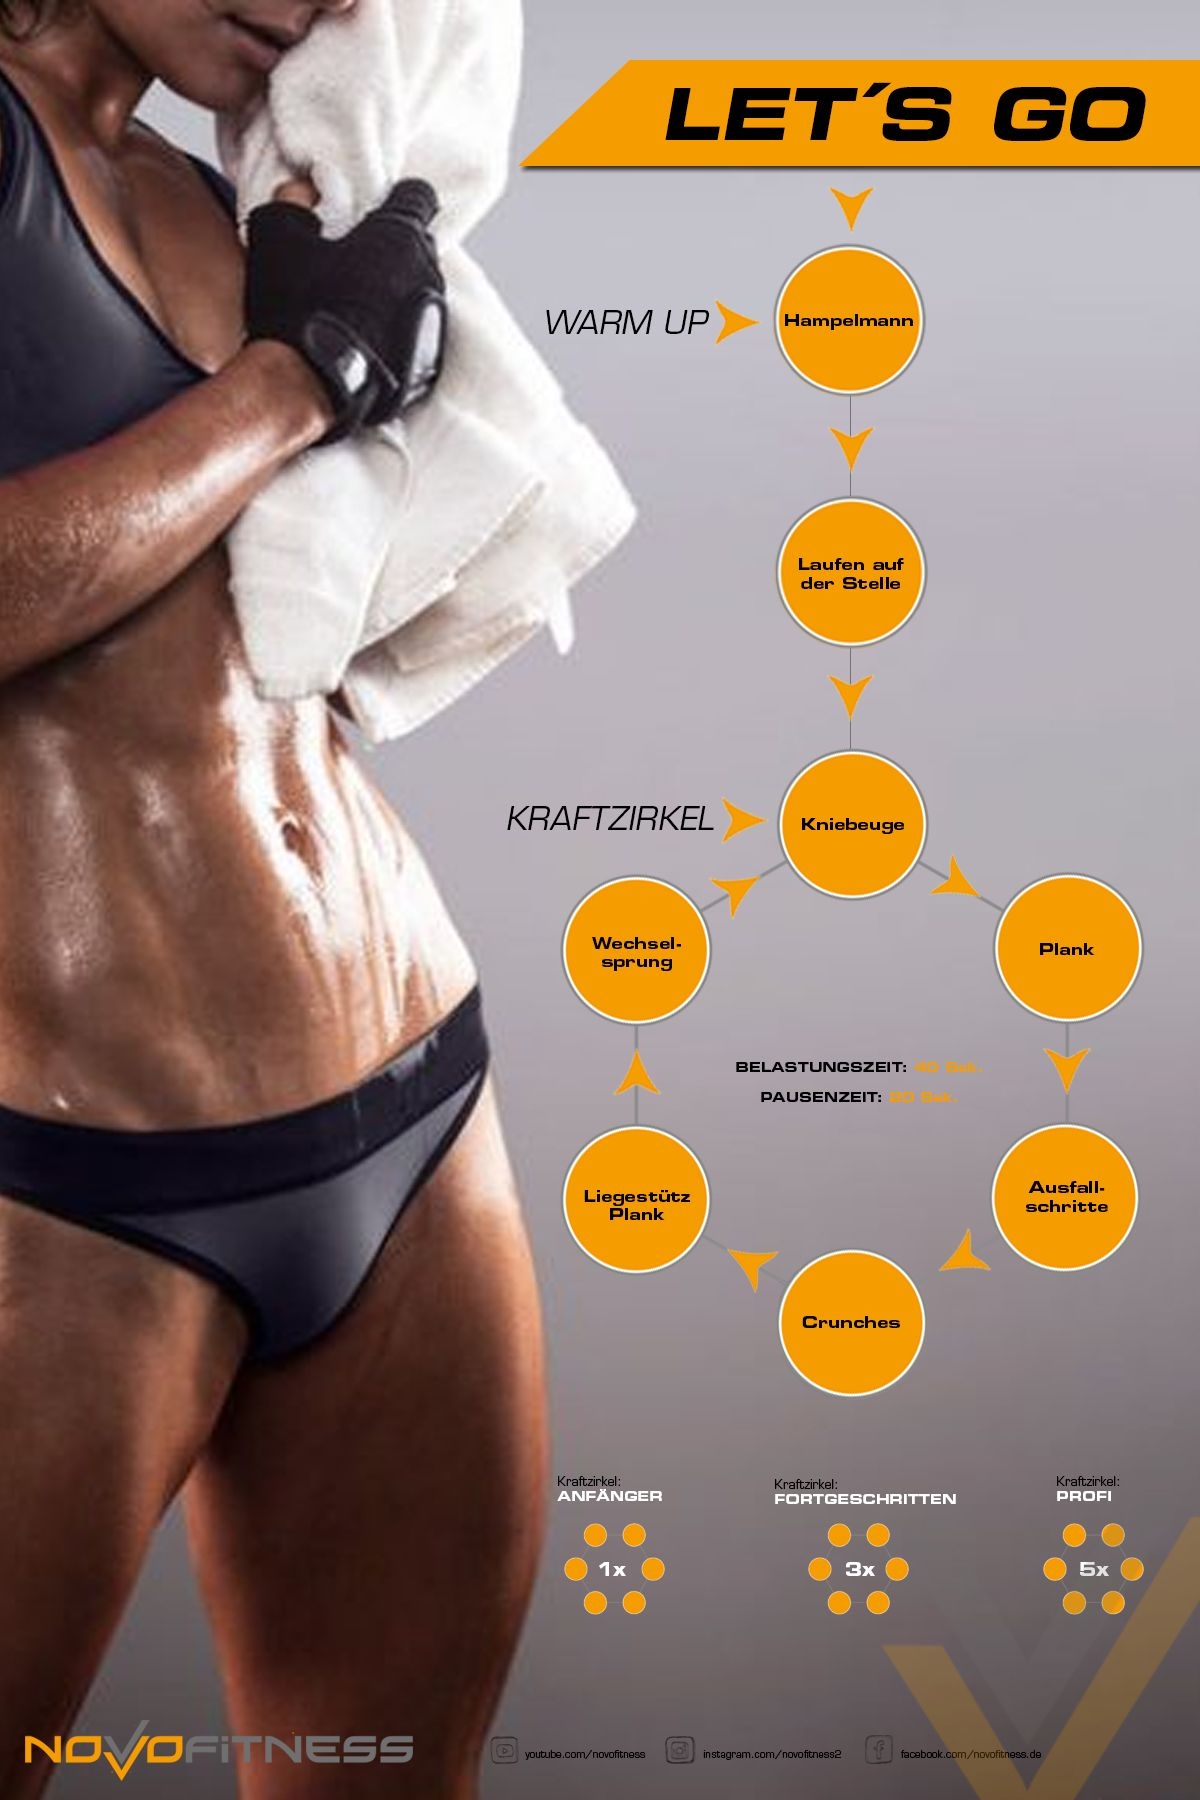 Let´s Workout Let´s Workout Workout Plans workout plans strength training